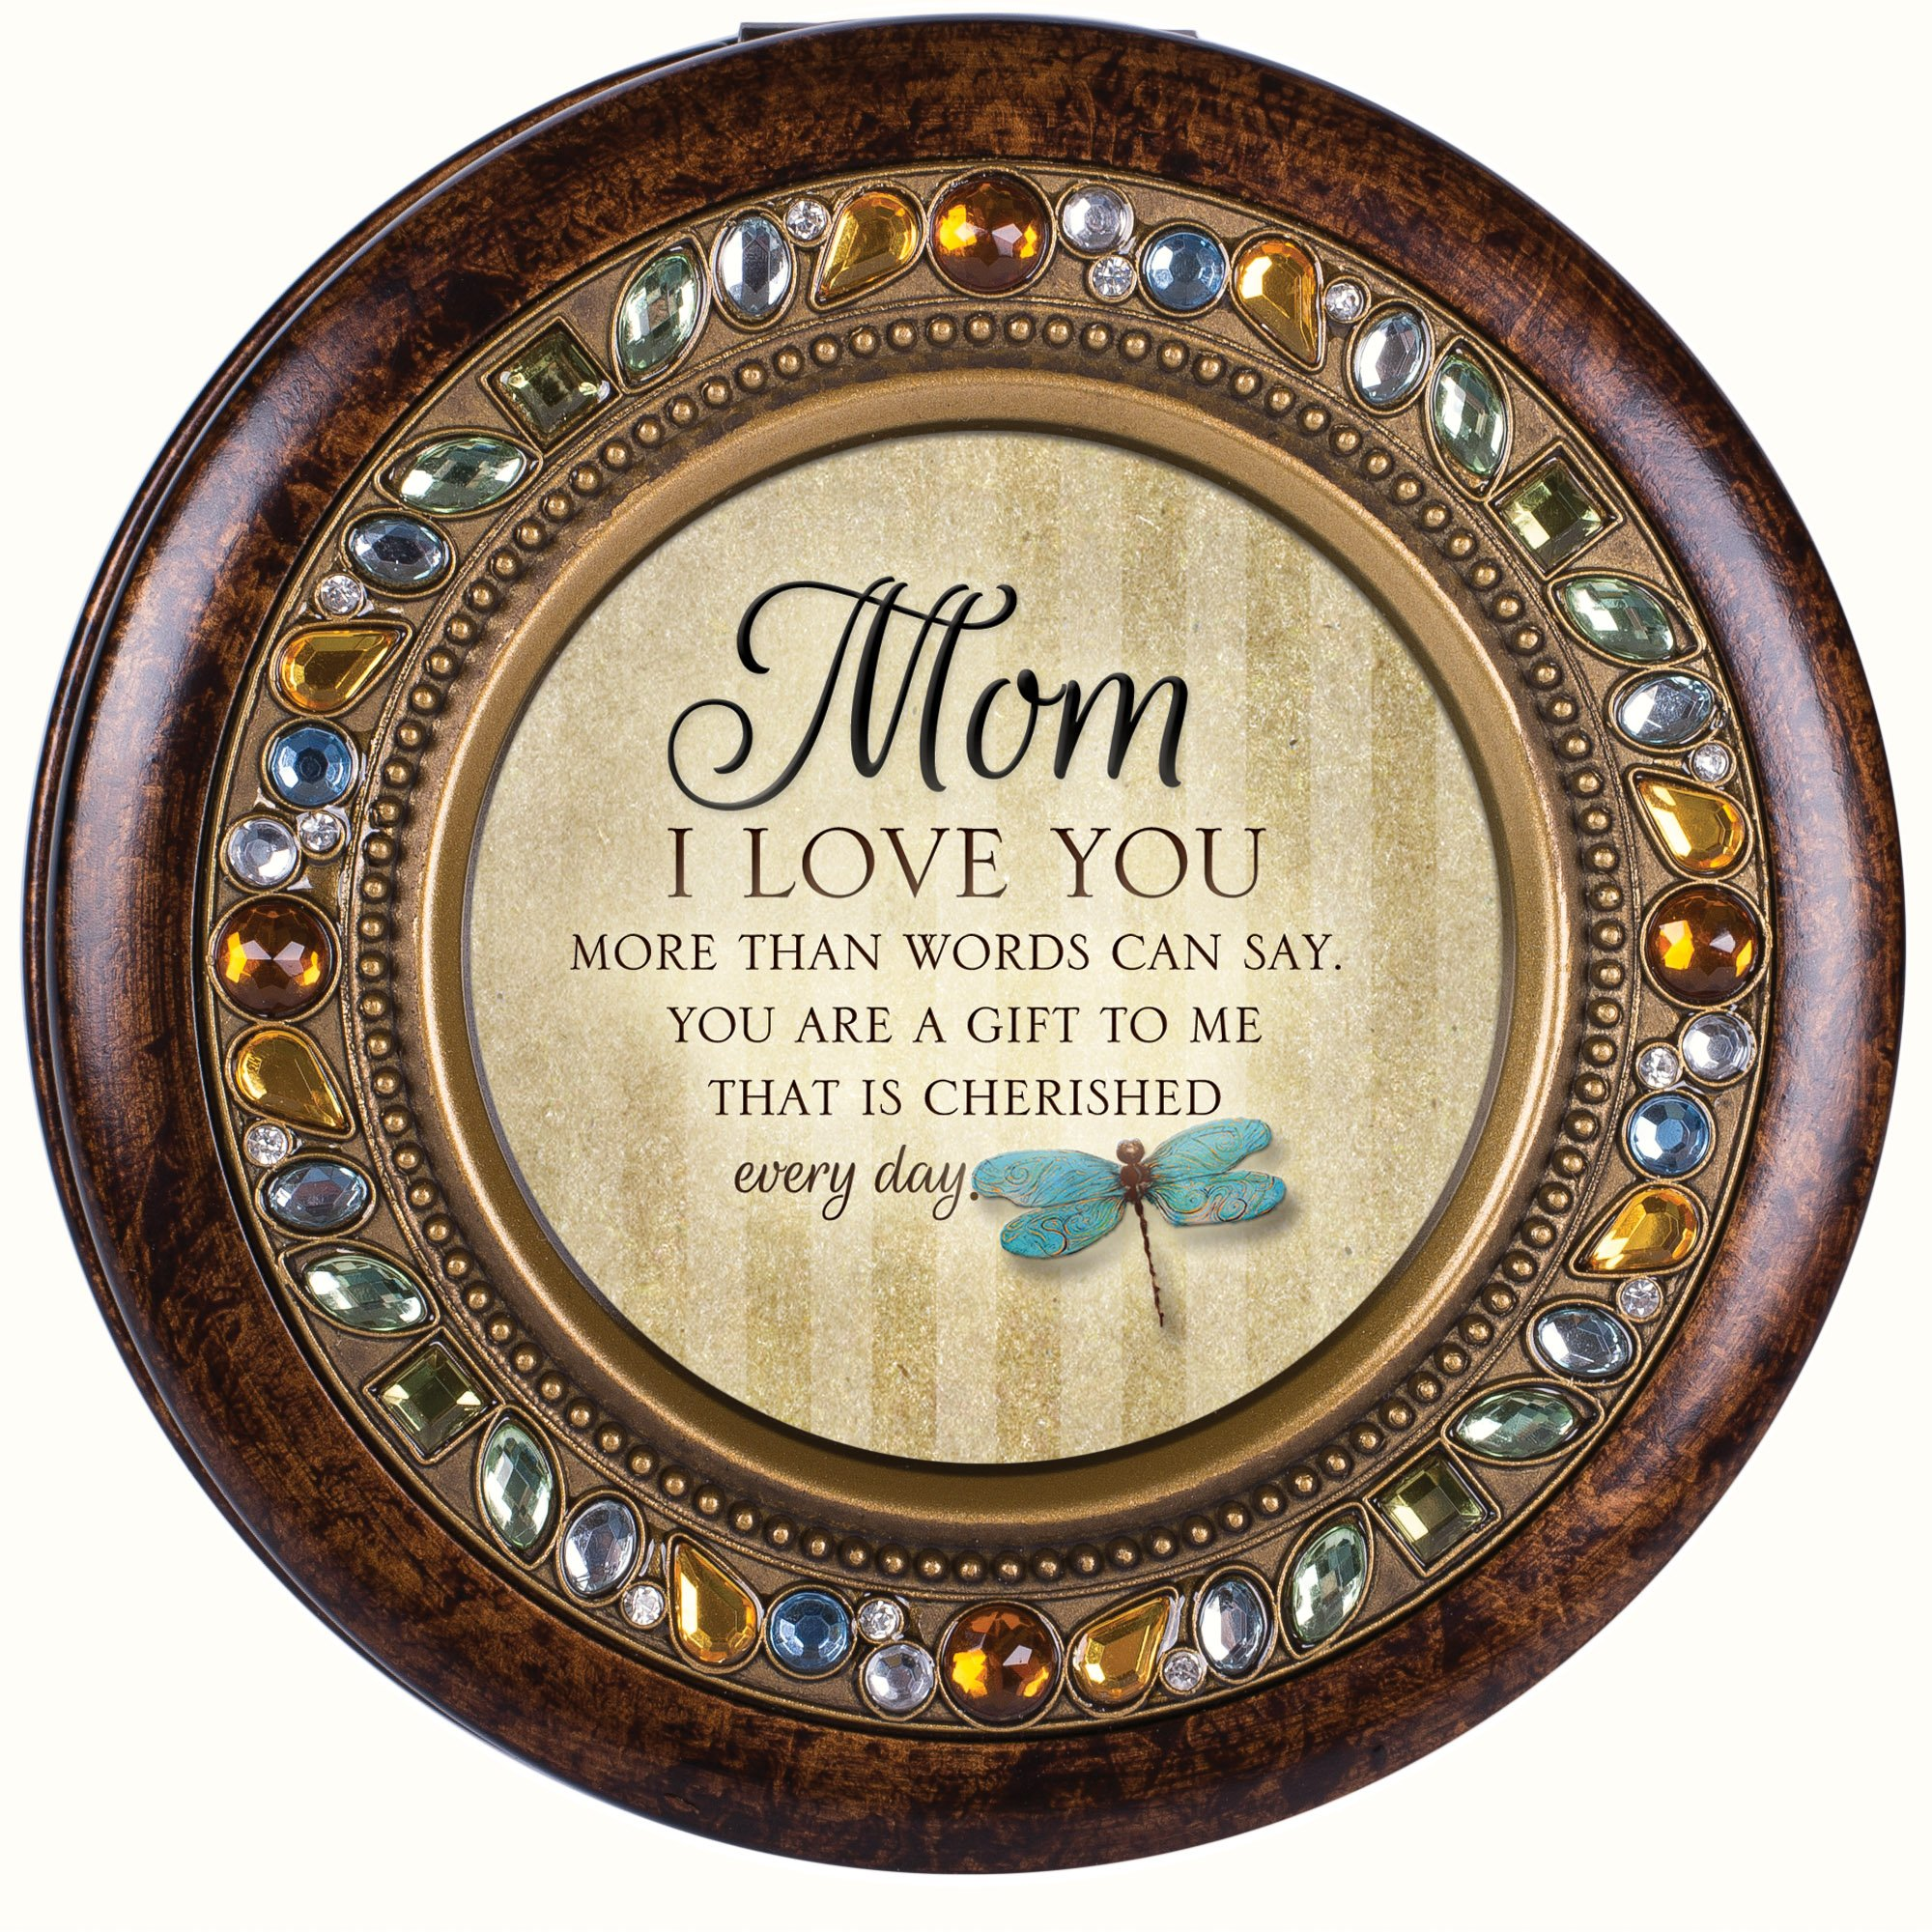 Cottage Garden Mom I Love You Every Day Jeweled Amber Earth Toned Round Music Box Plays Wind Beneath My Wings by Cottage Garden (Image #2)